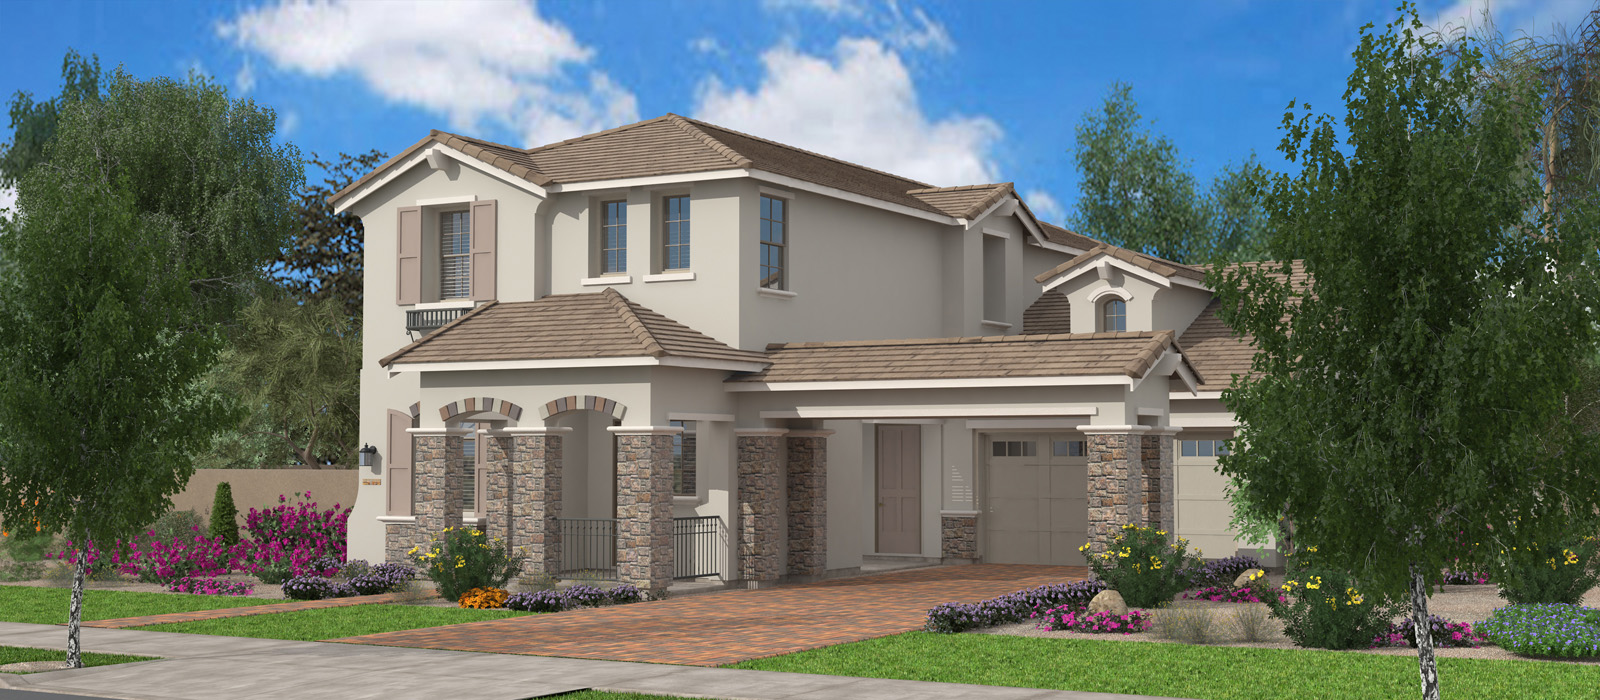 New Englander - Boston & Maine at Cooley Station by Fulton Homes